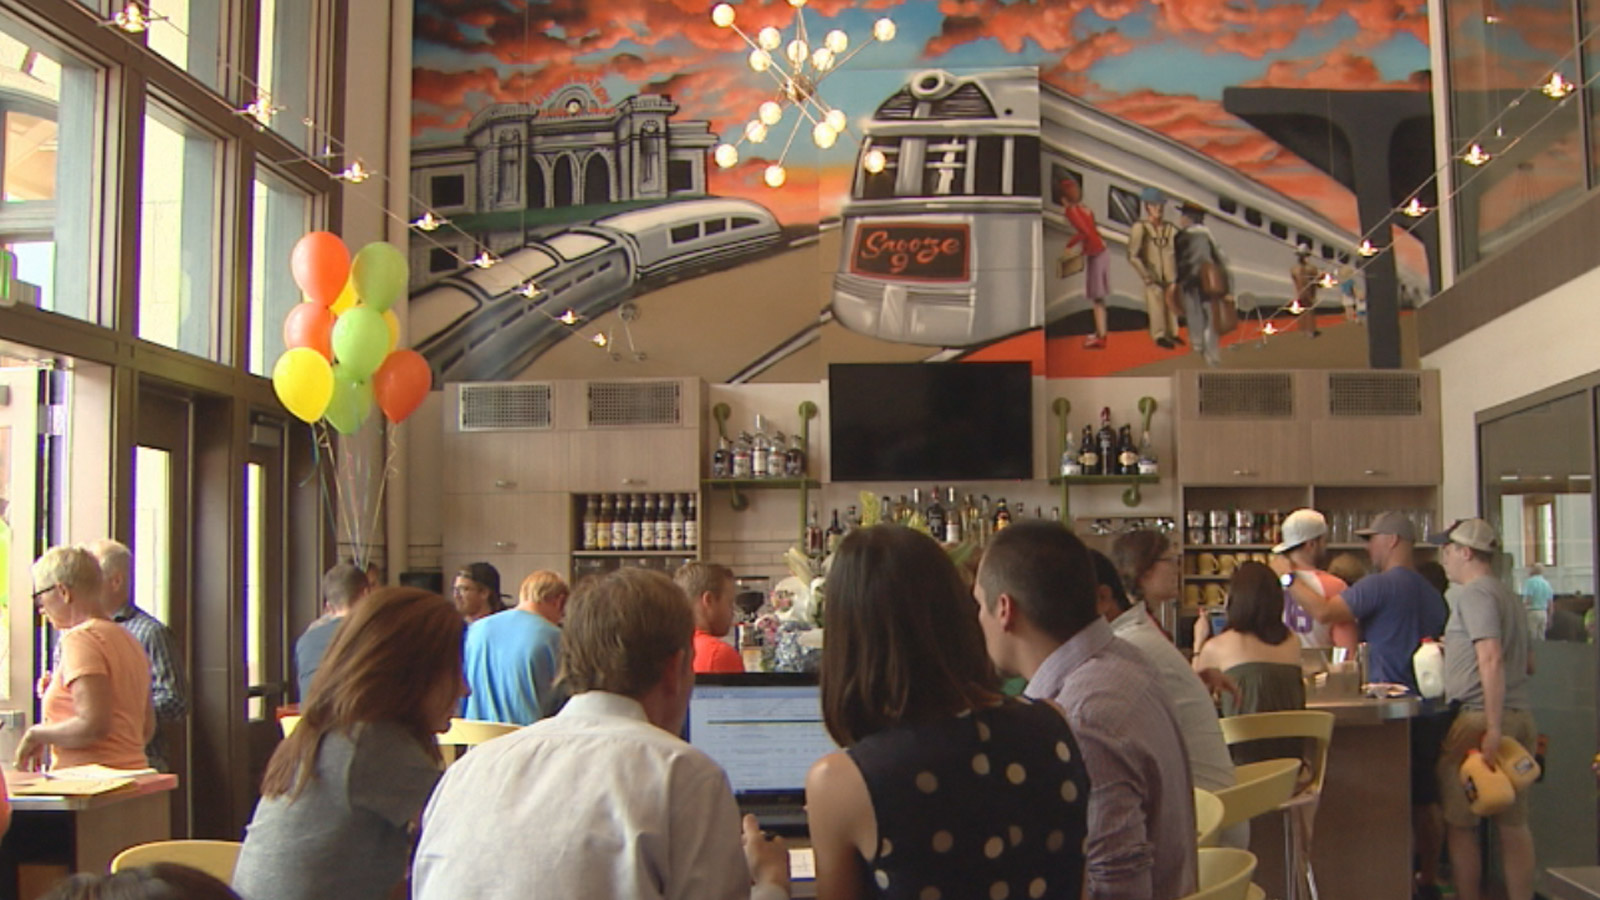 Snooze opens its 7th location at the renovated Union Station (credit: CBS)